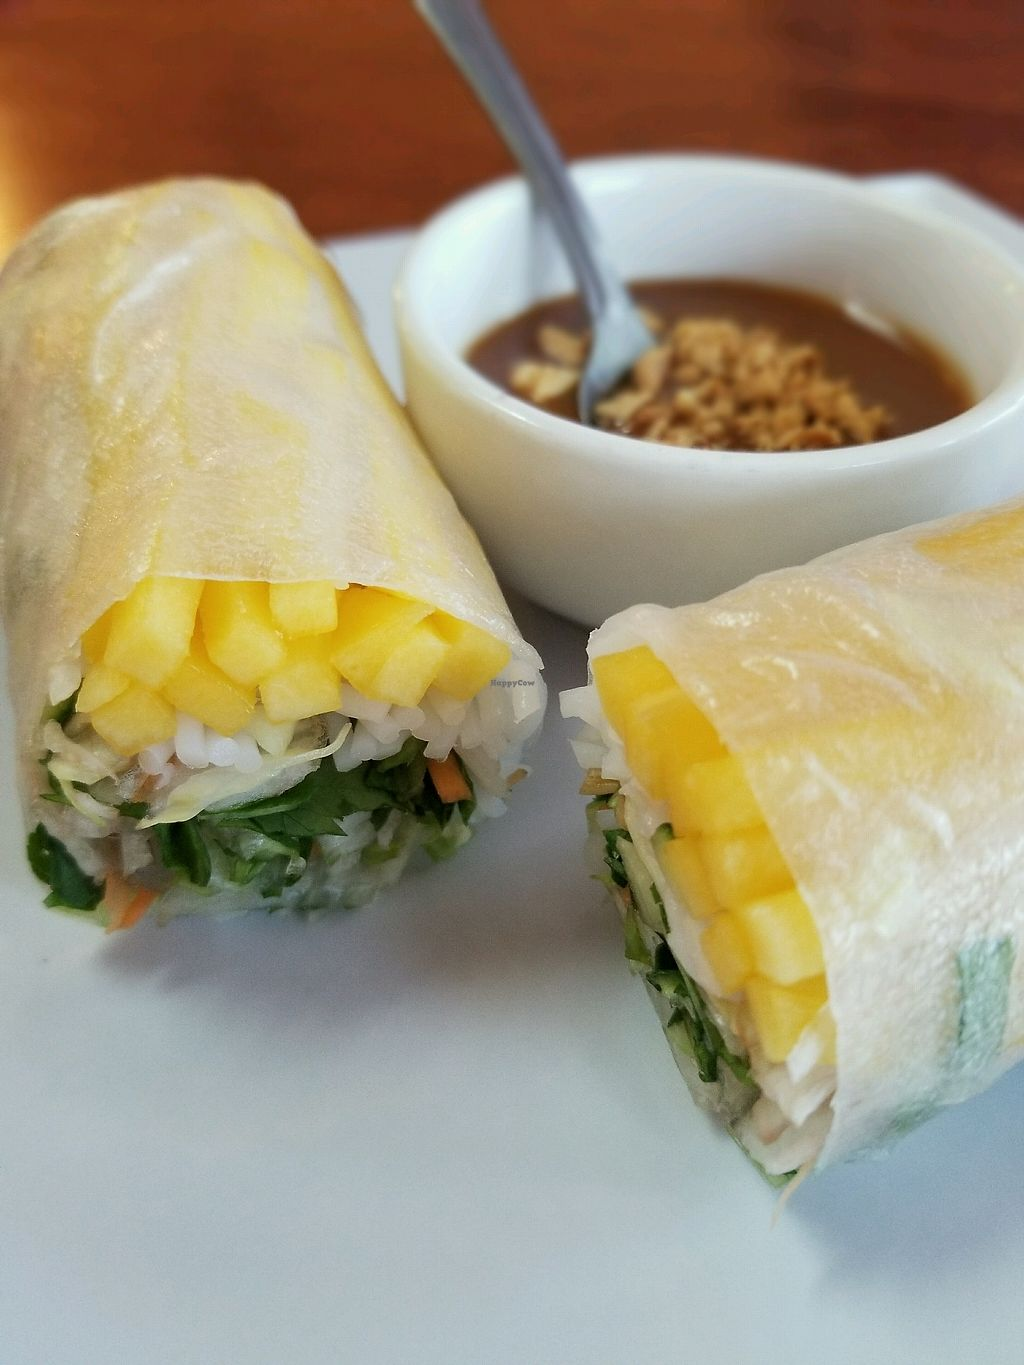 """Photo of Bambu  by <a href=""""/members/profile/IanHoxworth"""">IanHoxworth</a> <br/>Mango Spring Roll <br/> November 17, 2017  - <a href='/contact/abuse/image/51240/326551'>Report</a>"""